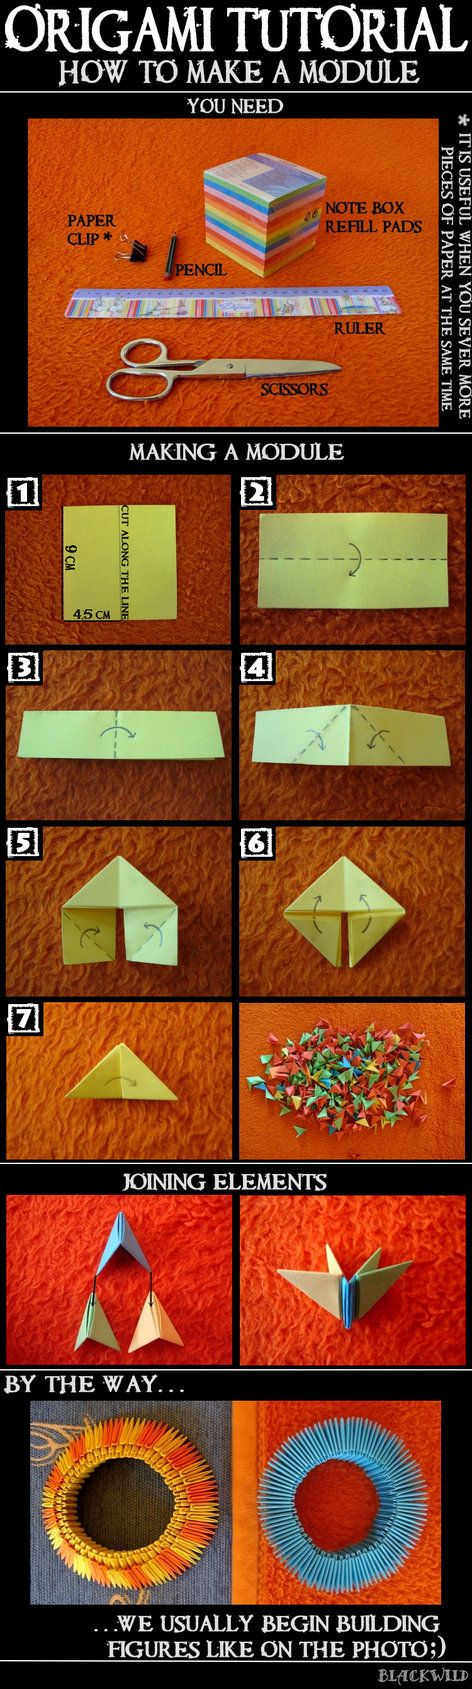 Origami Tutorial - Módulo por ~ blackwild on deviantART